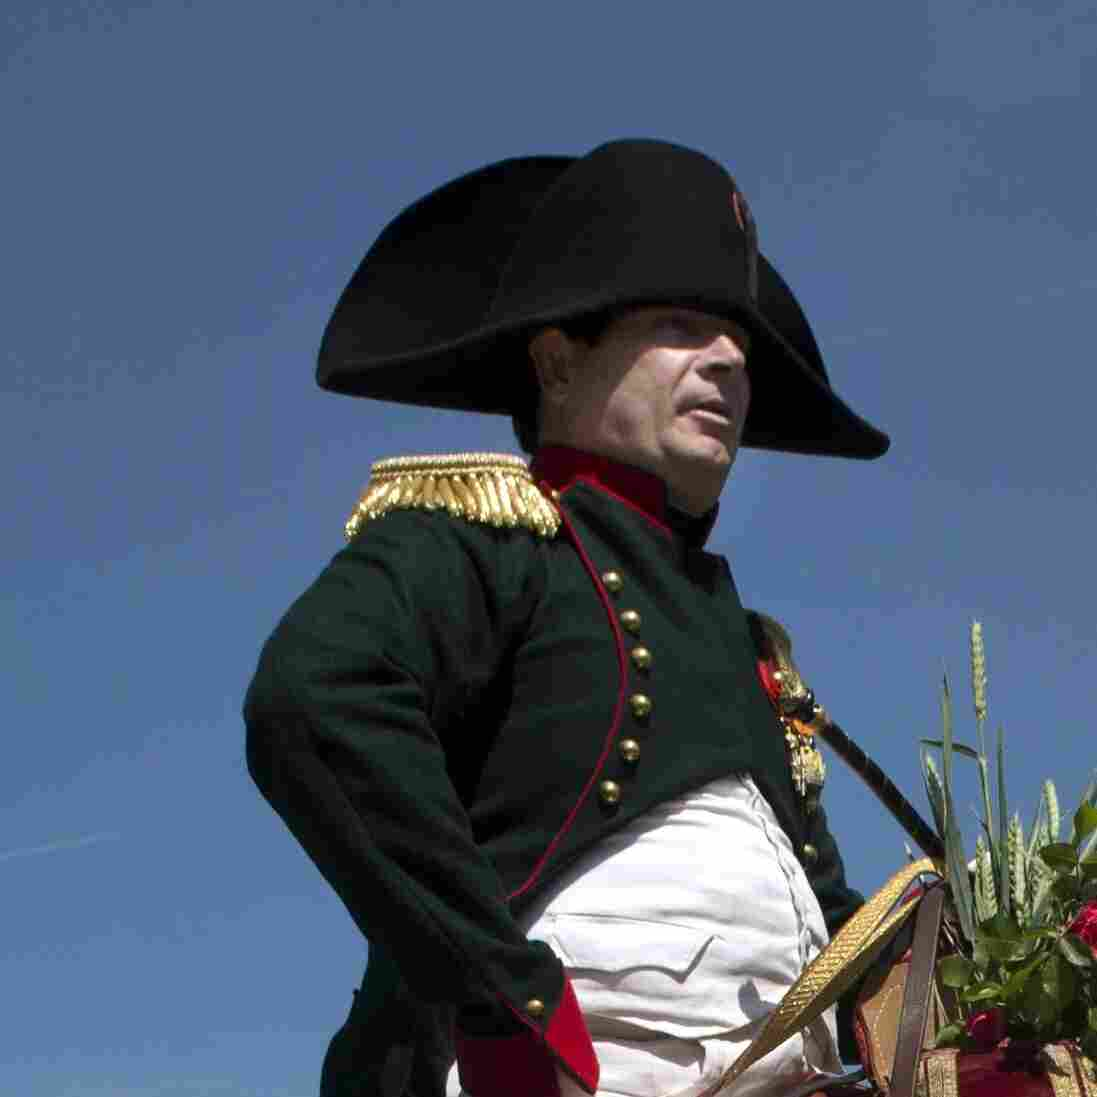 200 Years After Waterloo, Napoleon Still Divides Europe